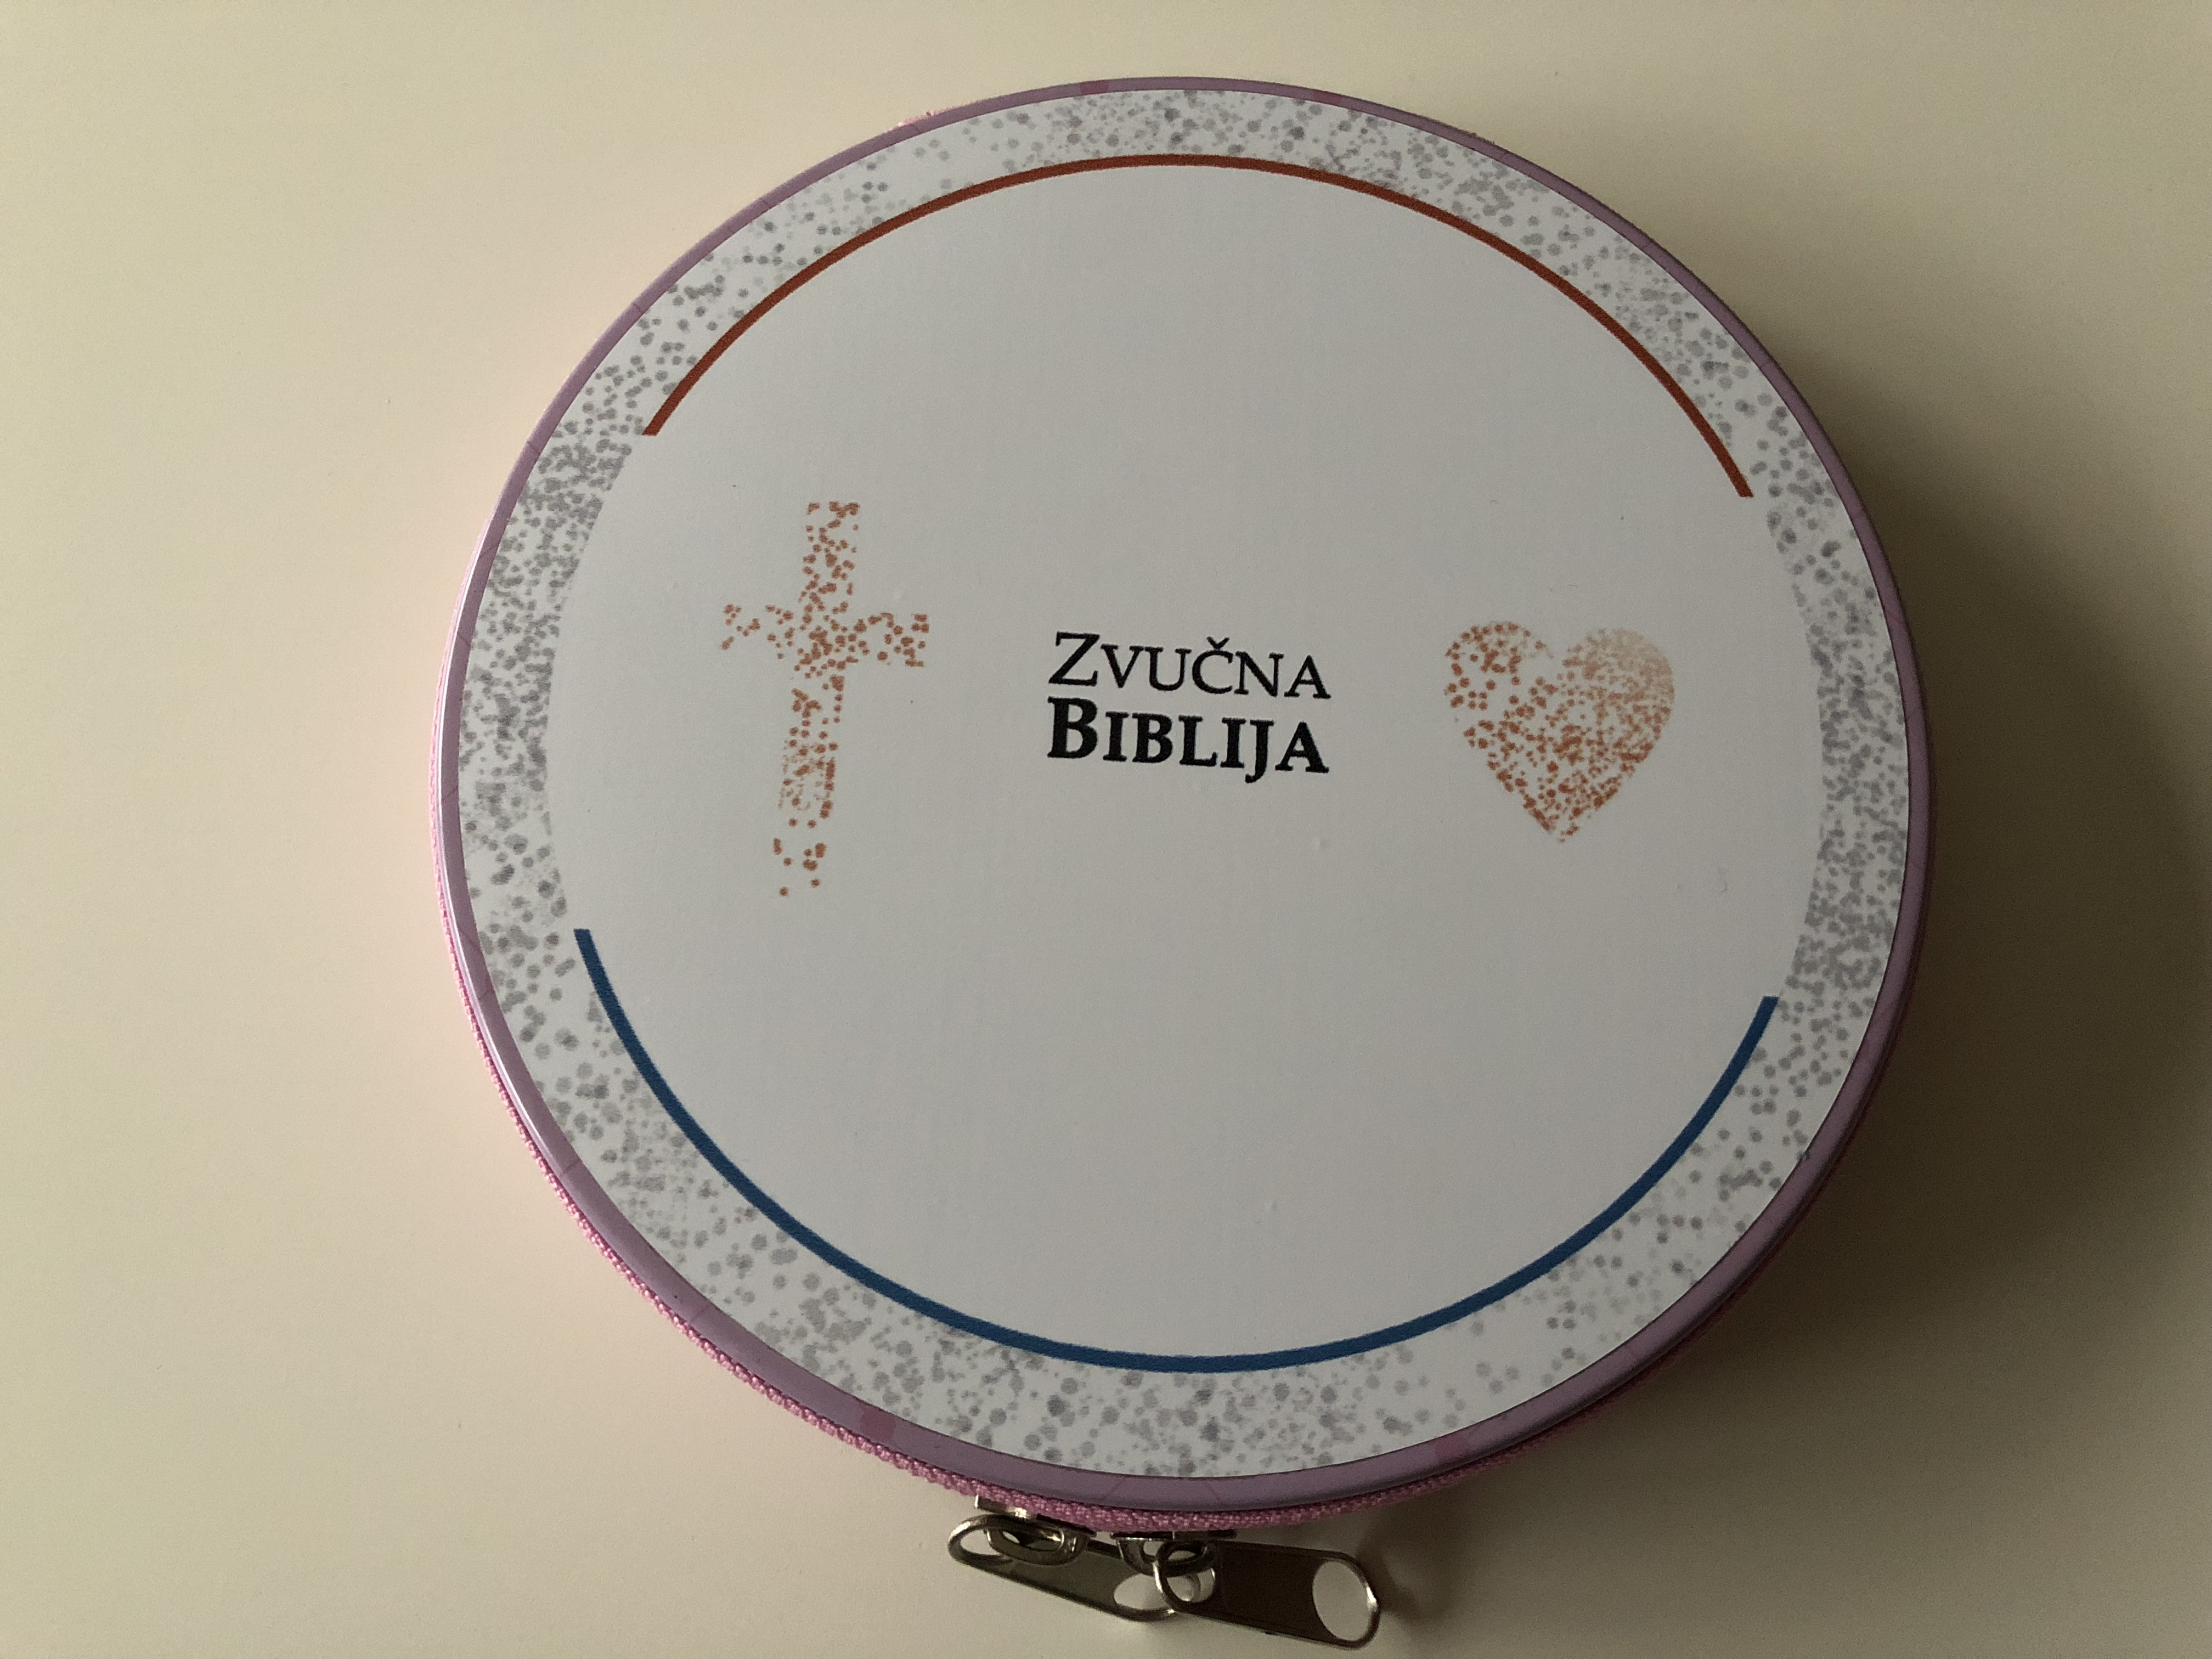 zvu-na-biblija-croatian-audio-bible-cd-set-of-11-discs-2000-2-.jpg